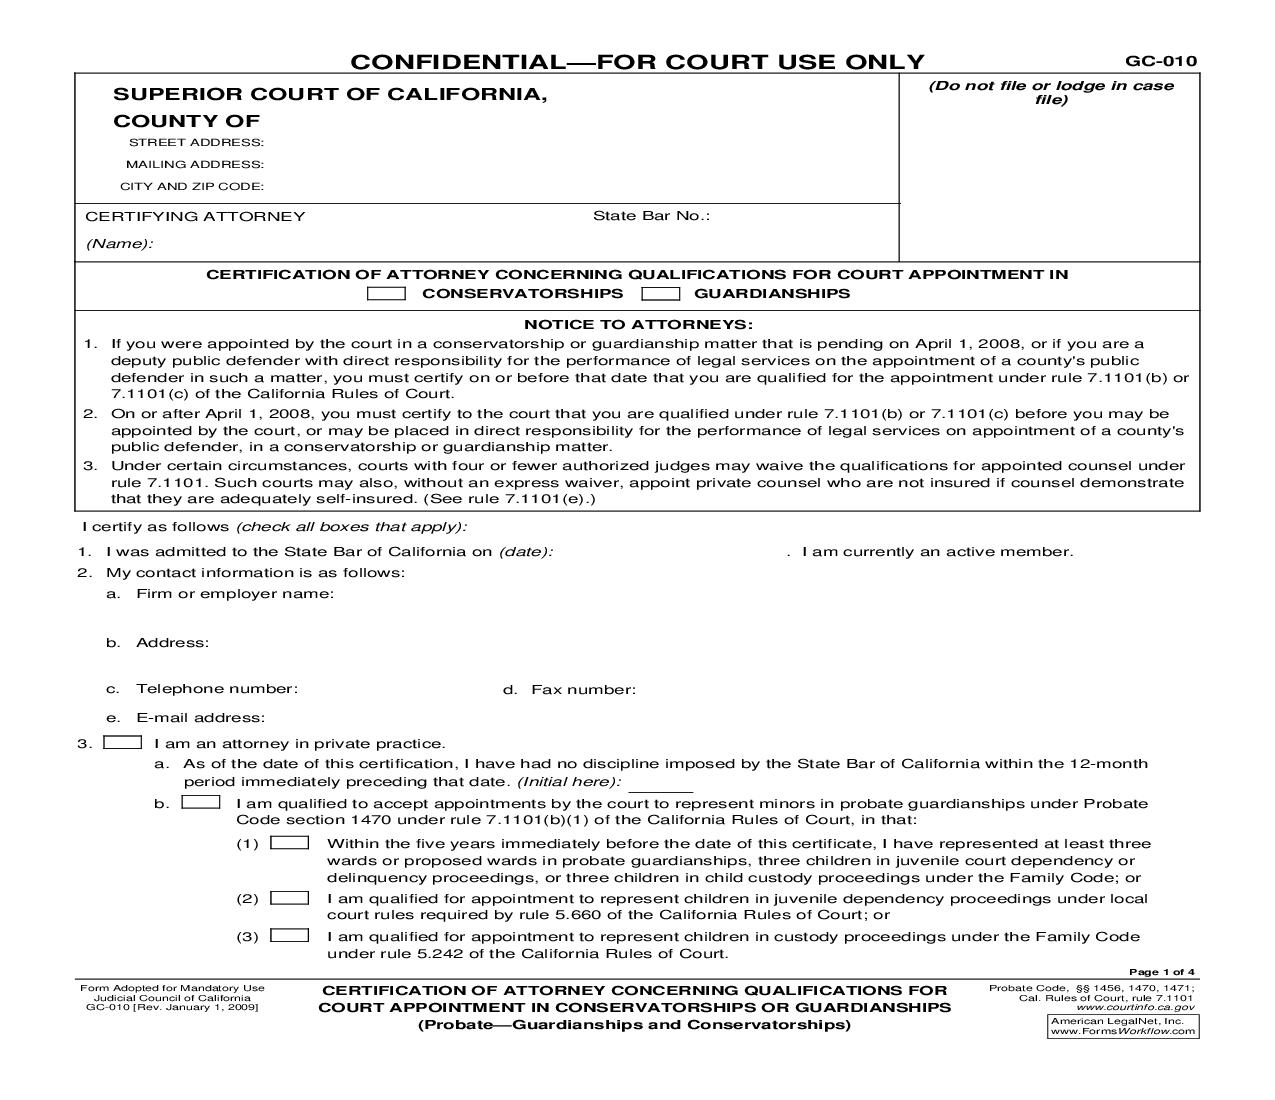 Certification Of Attorney Concerning Qualifications For Court Appointment {GC-010} | Pdf Fpdf Doc Docx | California